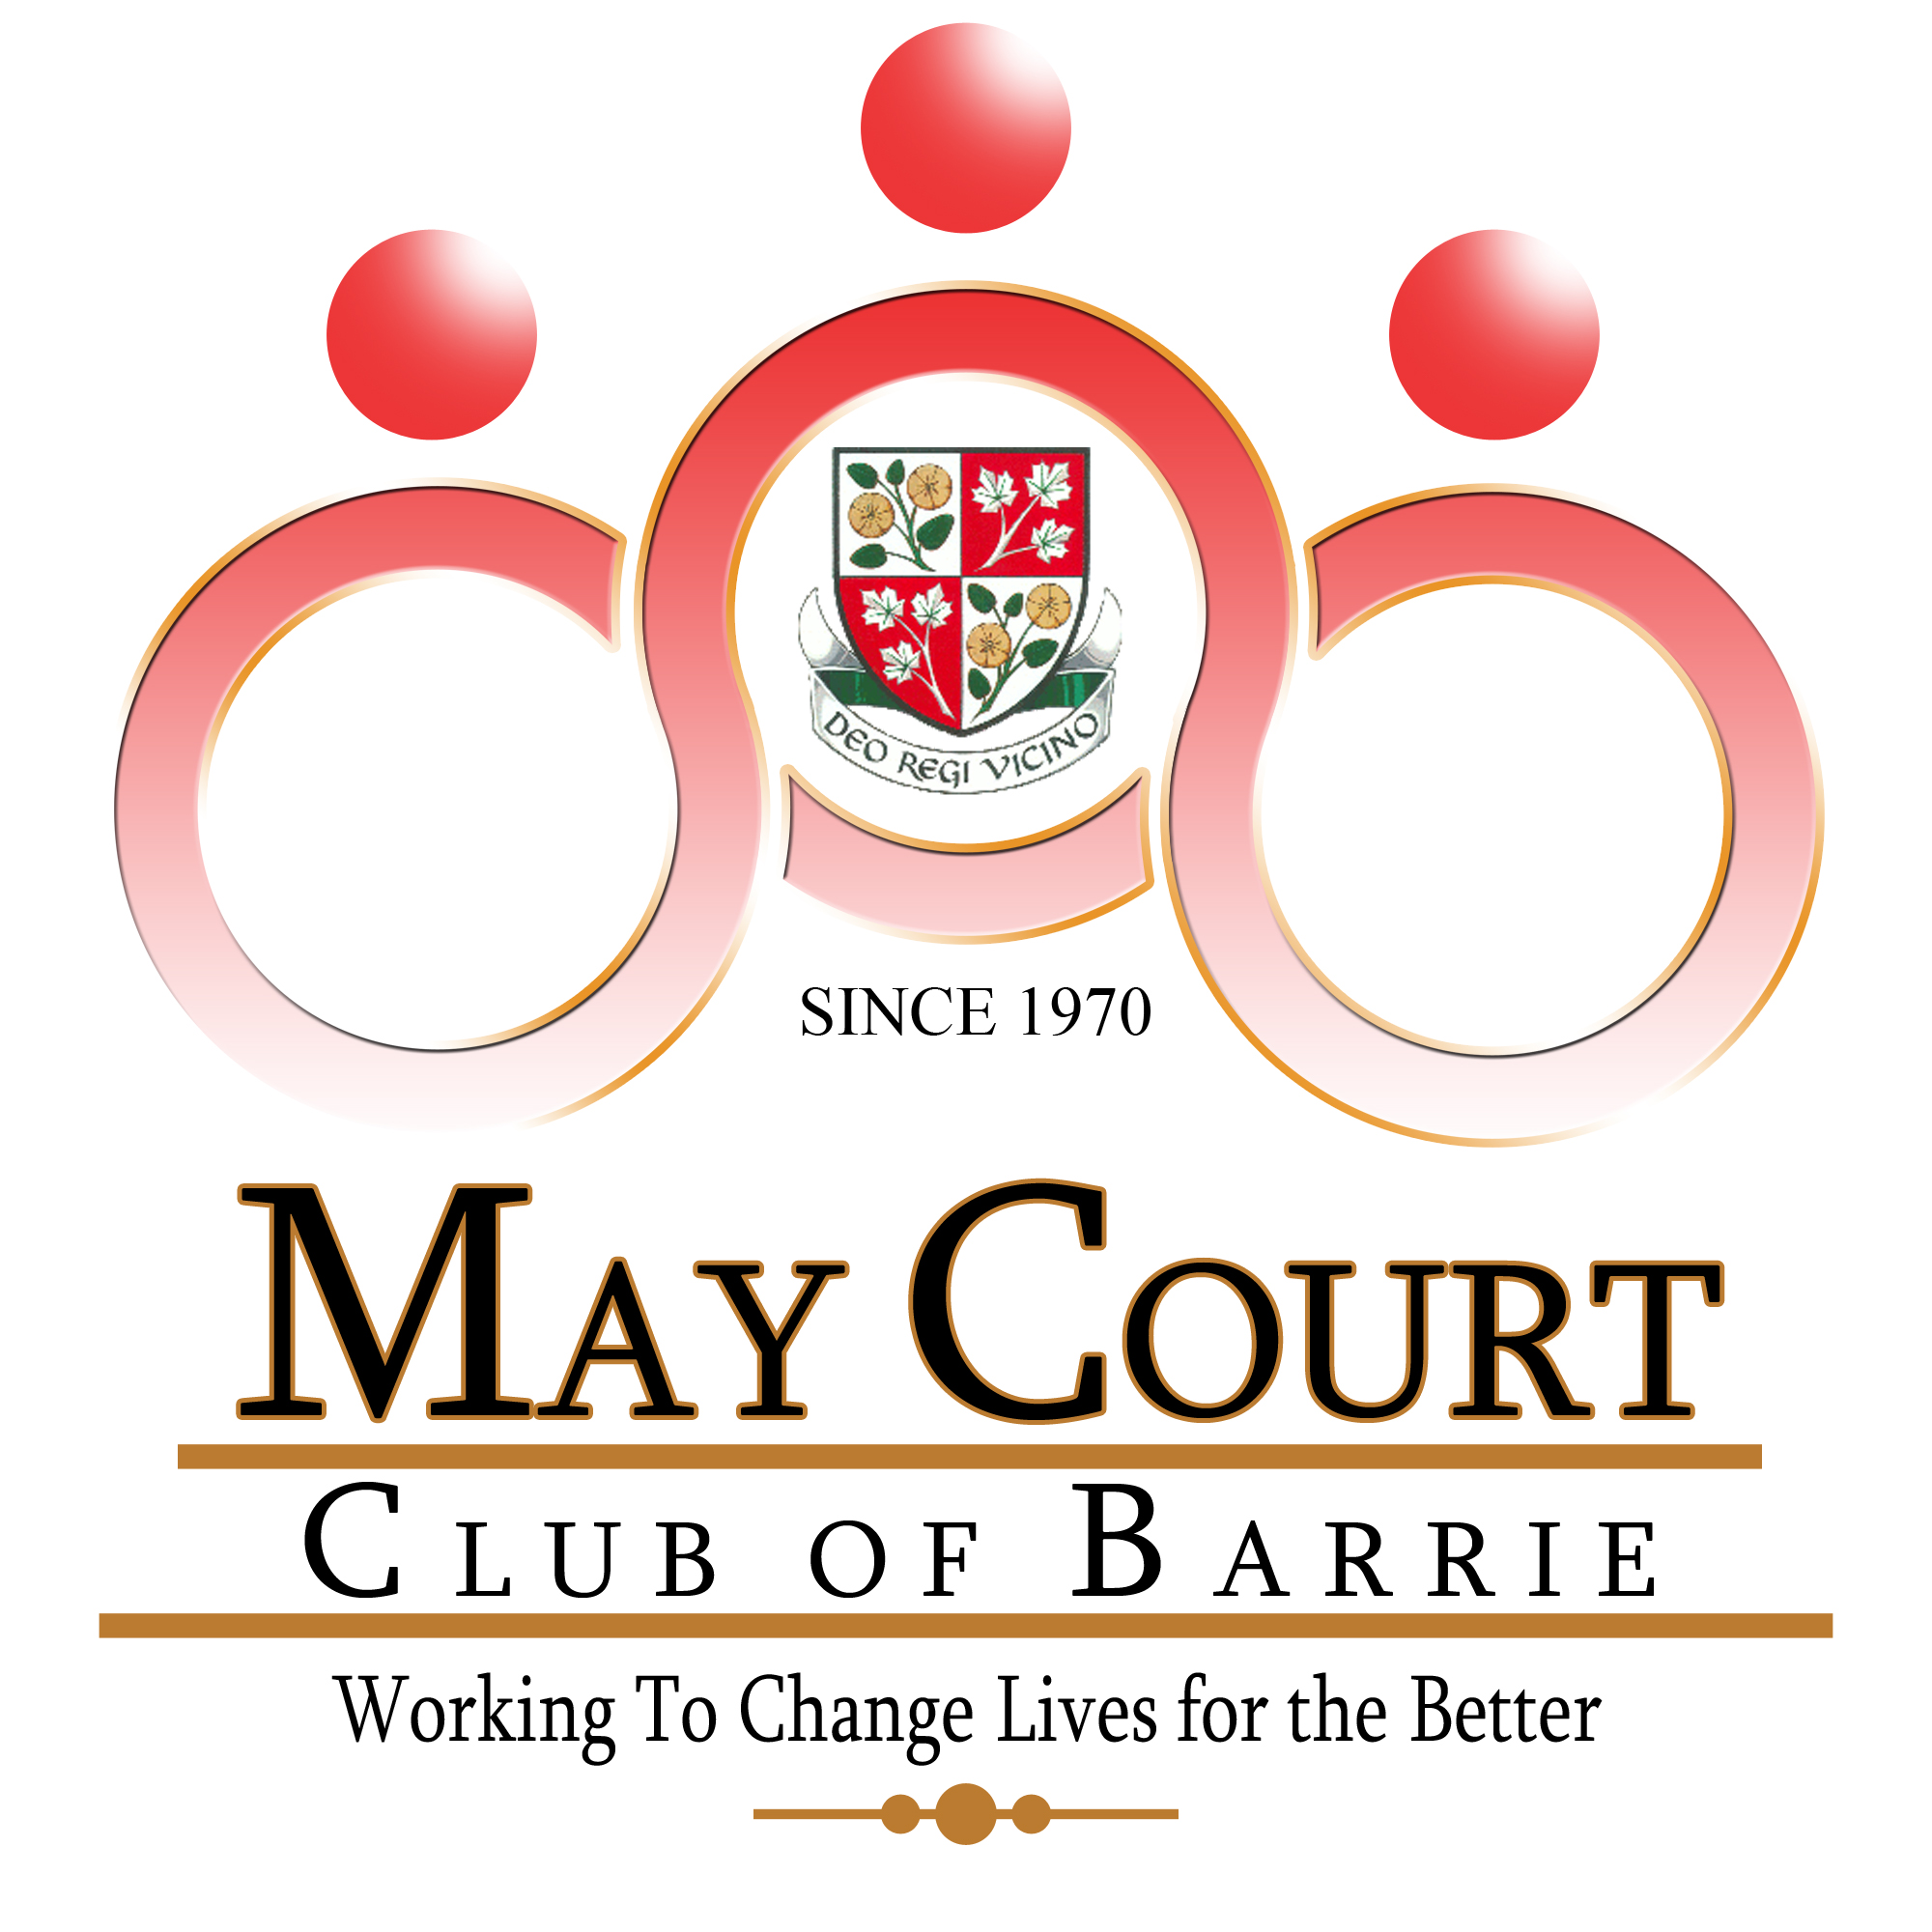 Logo Design by Ervin Beñez - Entry No. 105 in the Logo Design Contest New Logo Design for MAY COURT CLUB OF BARRIE.